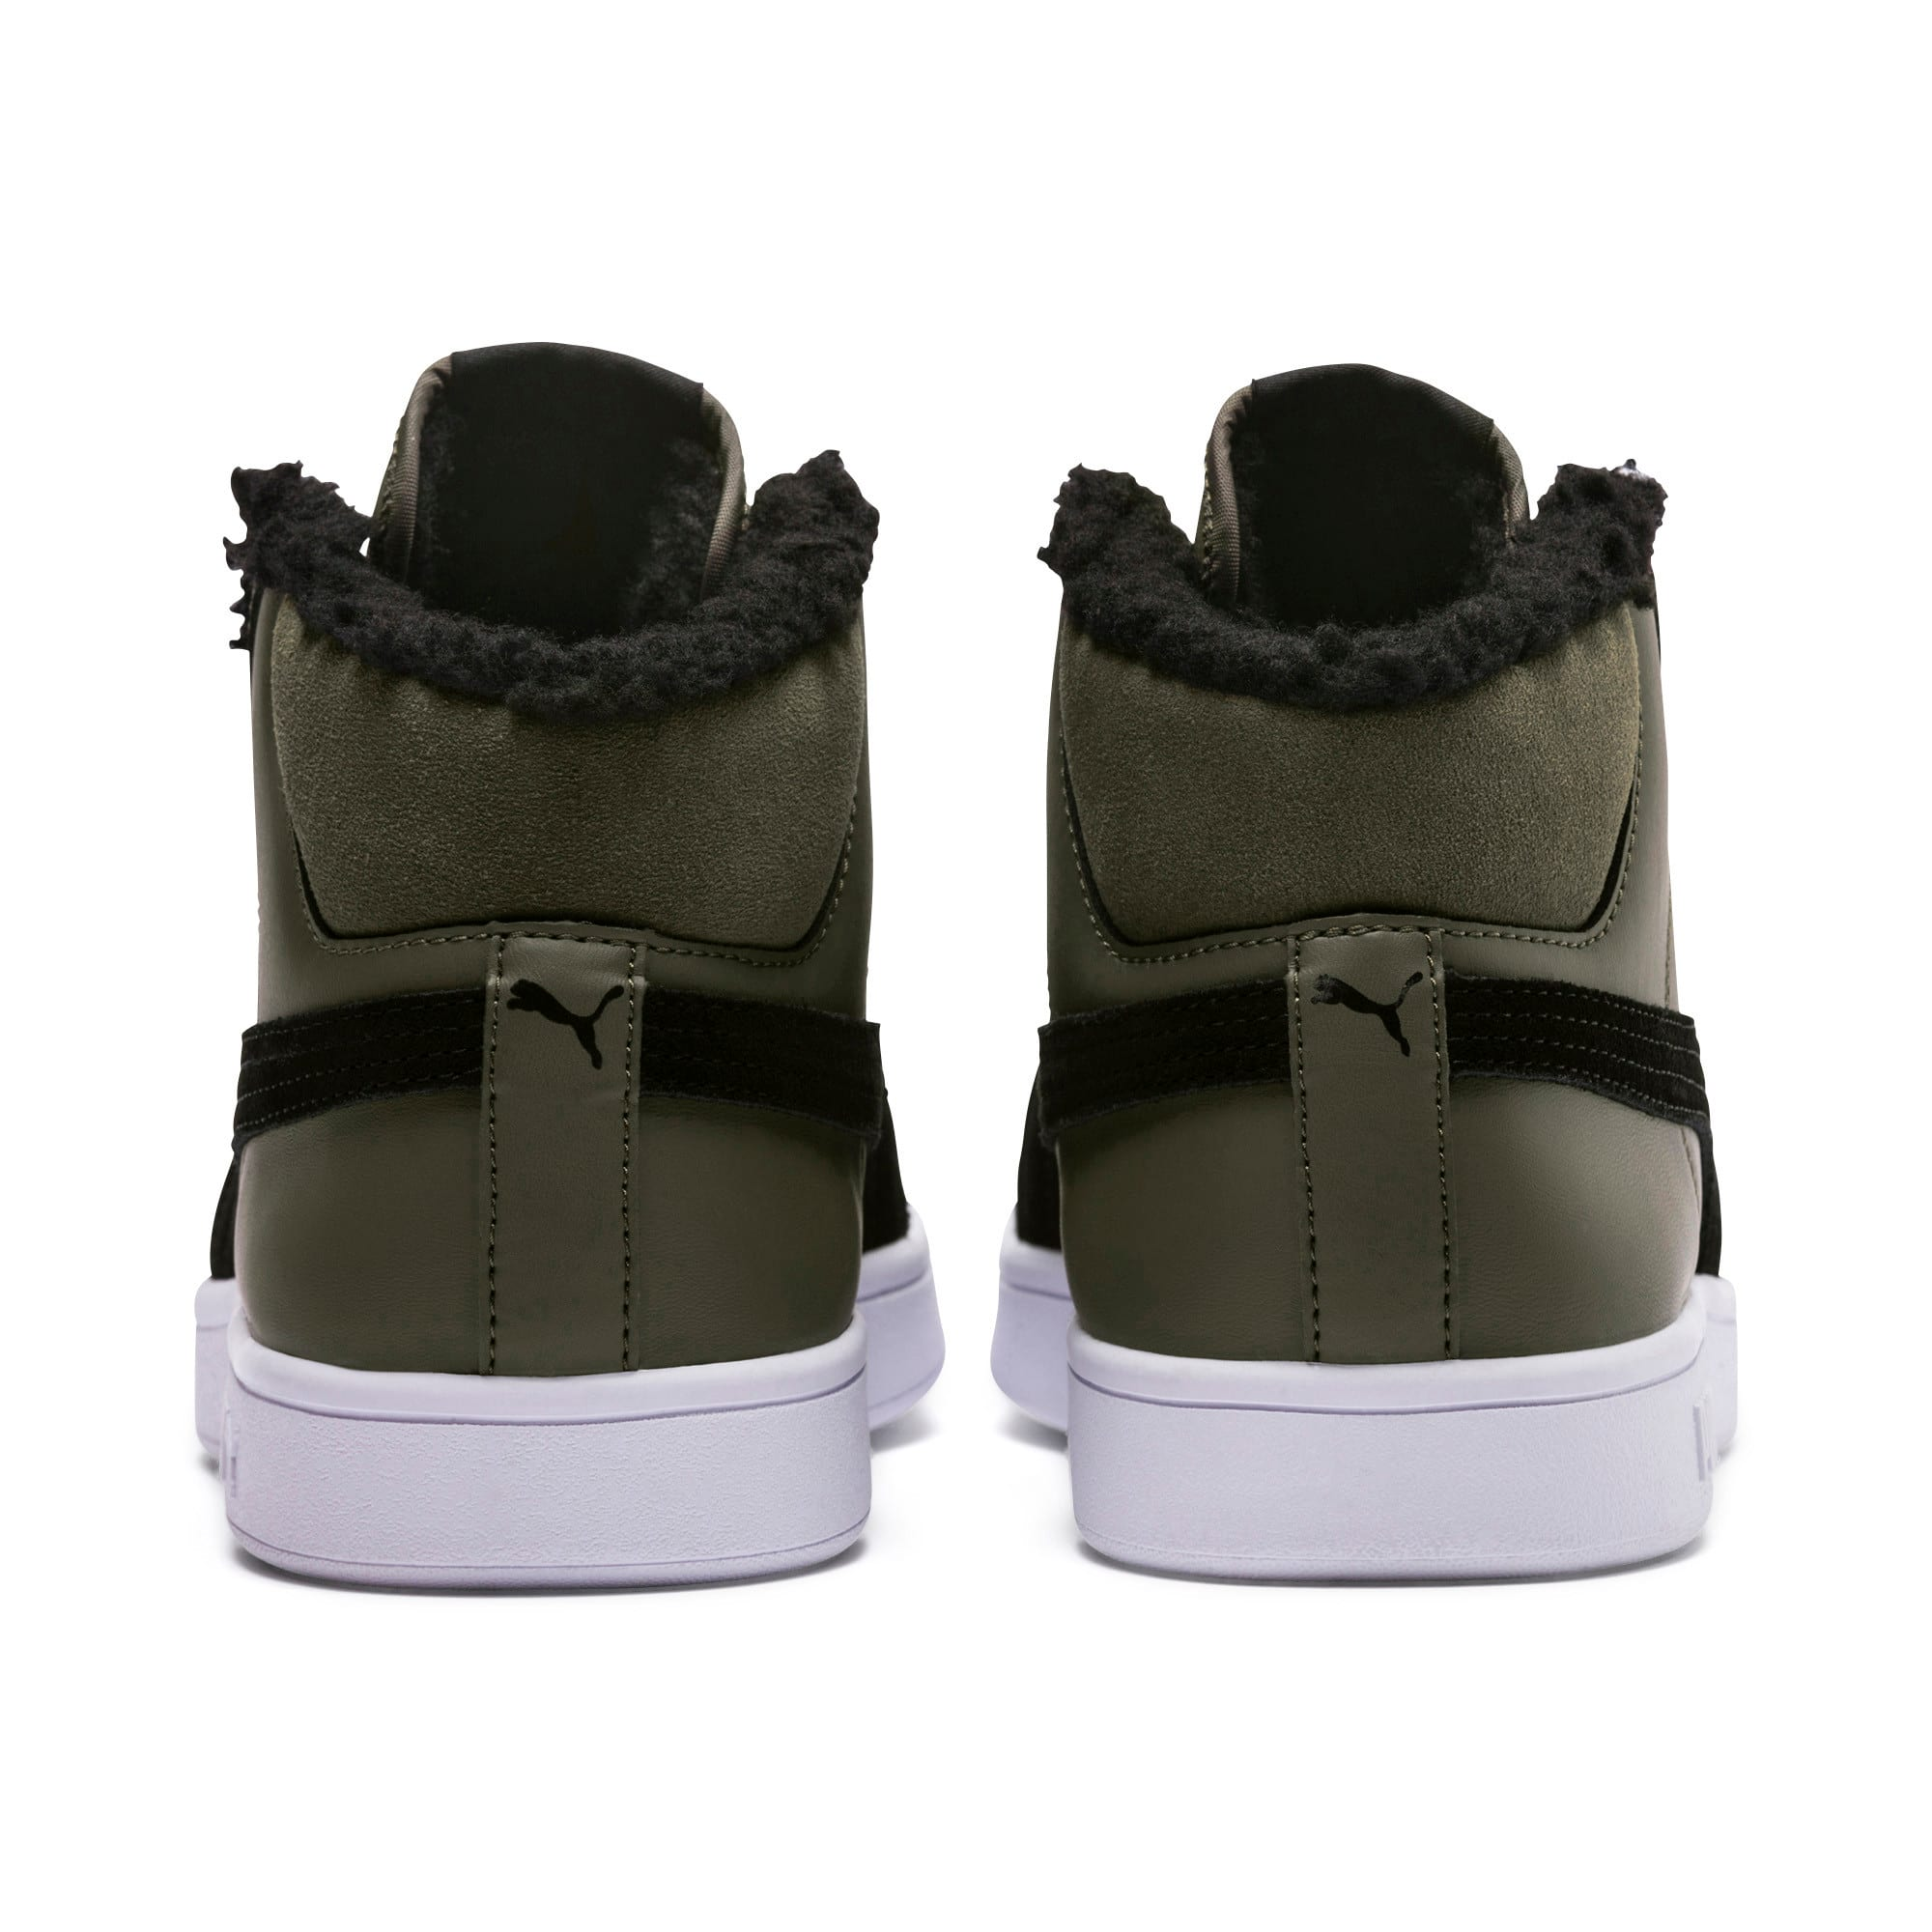 Thumbnail 4 of Smash v2 Mid Winterized Leather High Tops, Forest Night-Puma Black, medium-IND